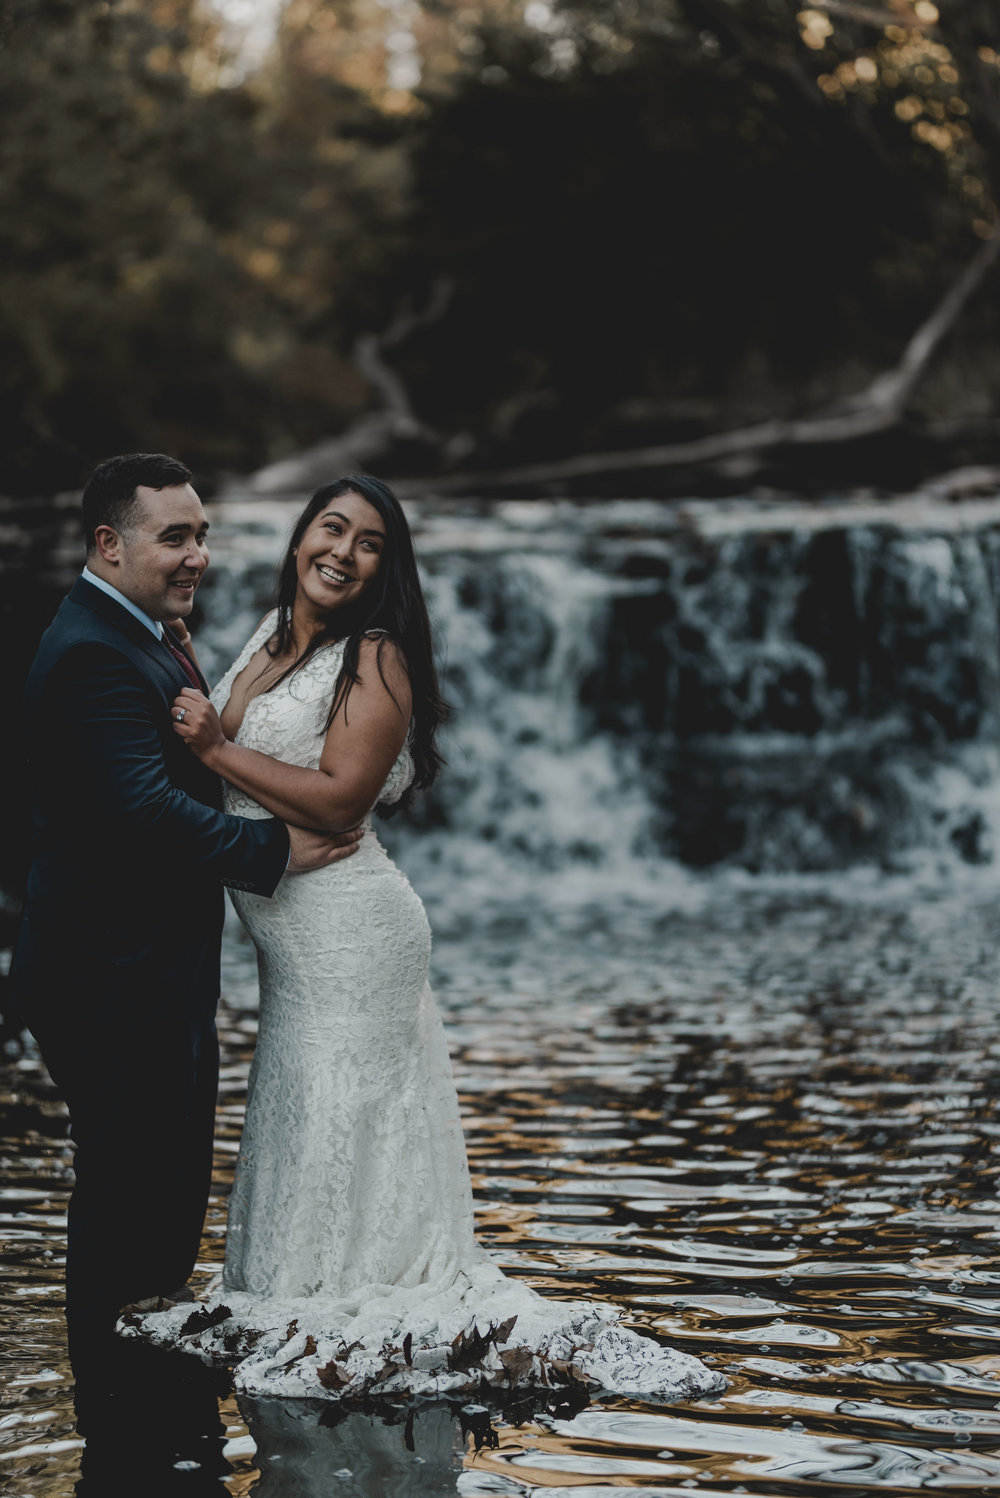 Bride and Groom Portrait Waterfall Glen Chicago Elopement Jenn Marie Photography